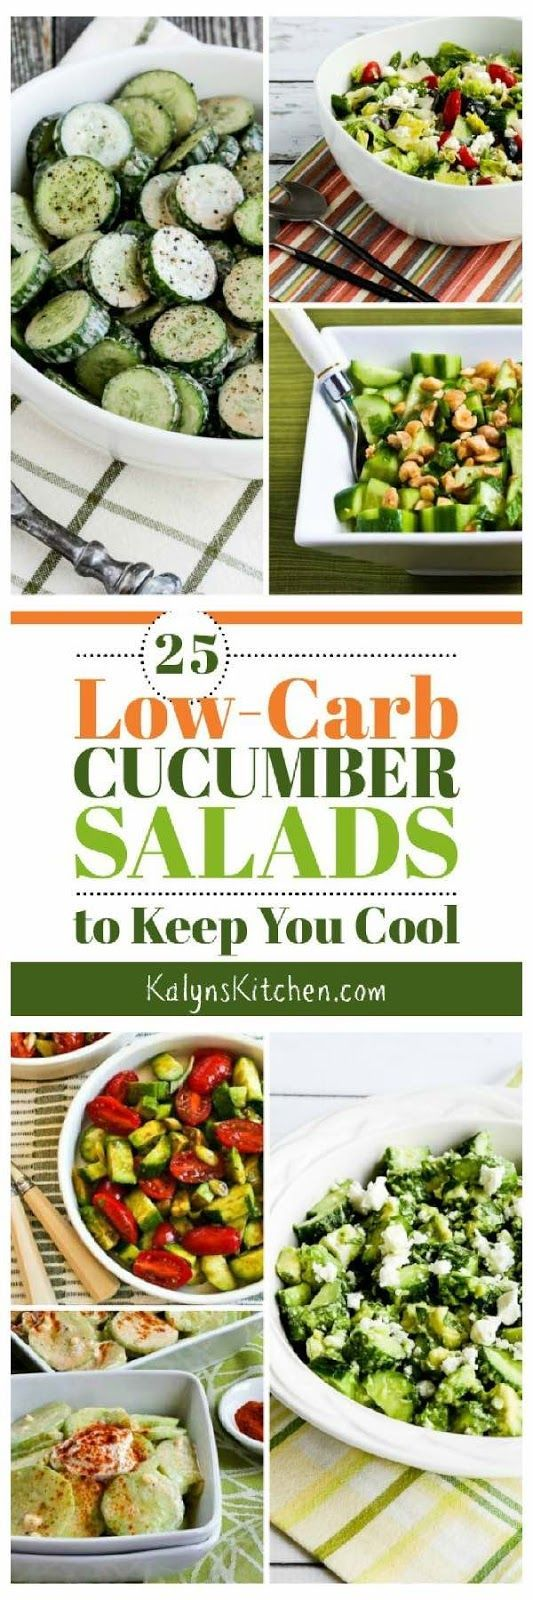 25 Low-Carb Cucumber Salads to Keep You Cool has enough tasty salad ideas with cucumbers that you can try new cucumber salads all summer long. All these low-carb salads are also gluten-free, low-glycemic, and South Beach Diet friendly, and most are also Keto. [found on KalynsKitchen.com]